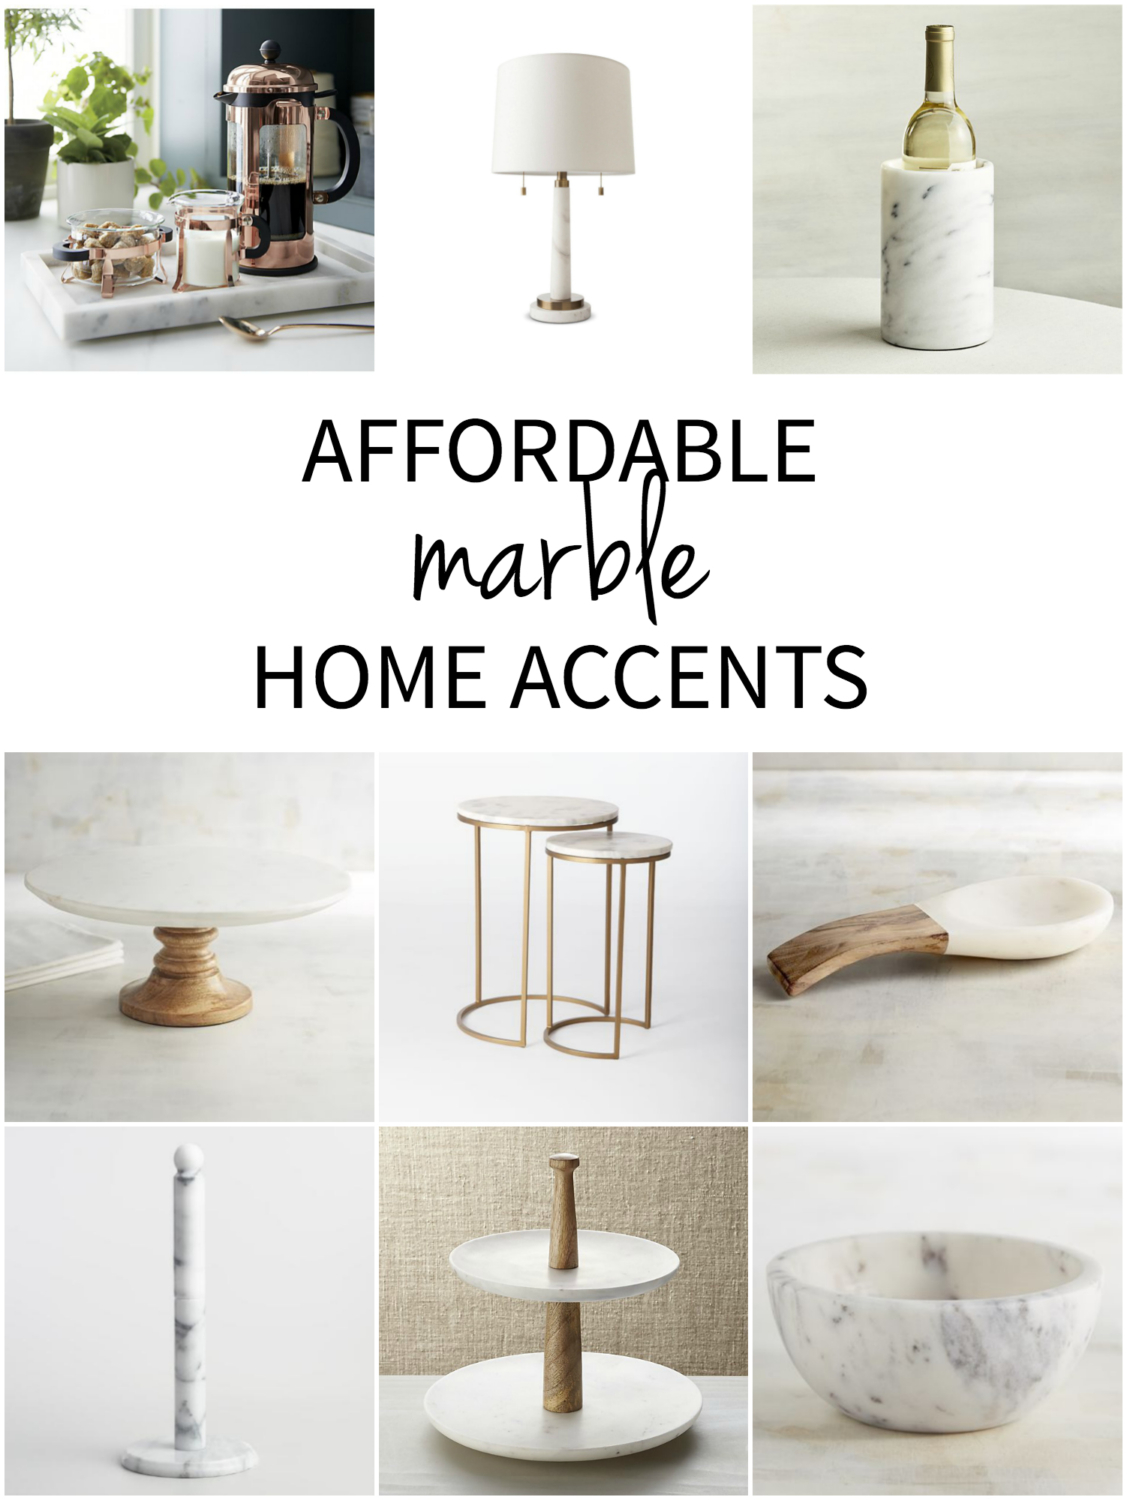 An easy to navigate collection of affordable marble home decor accents, everything from side tables and lamps to kitchen accessories.